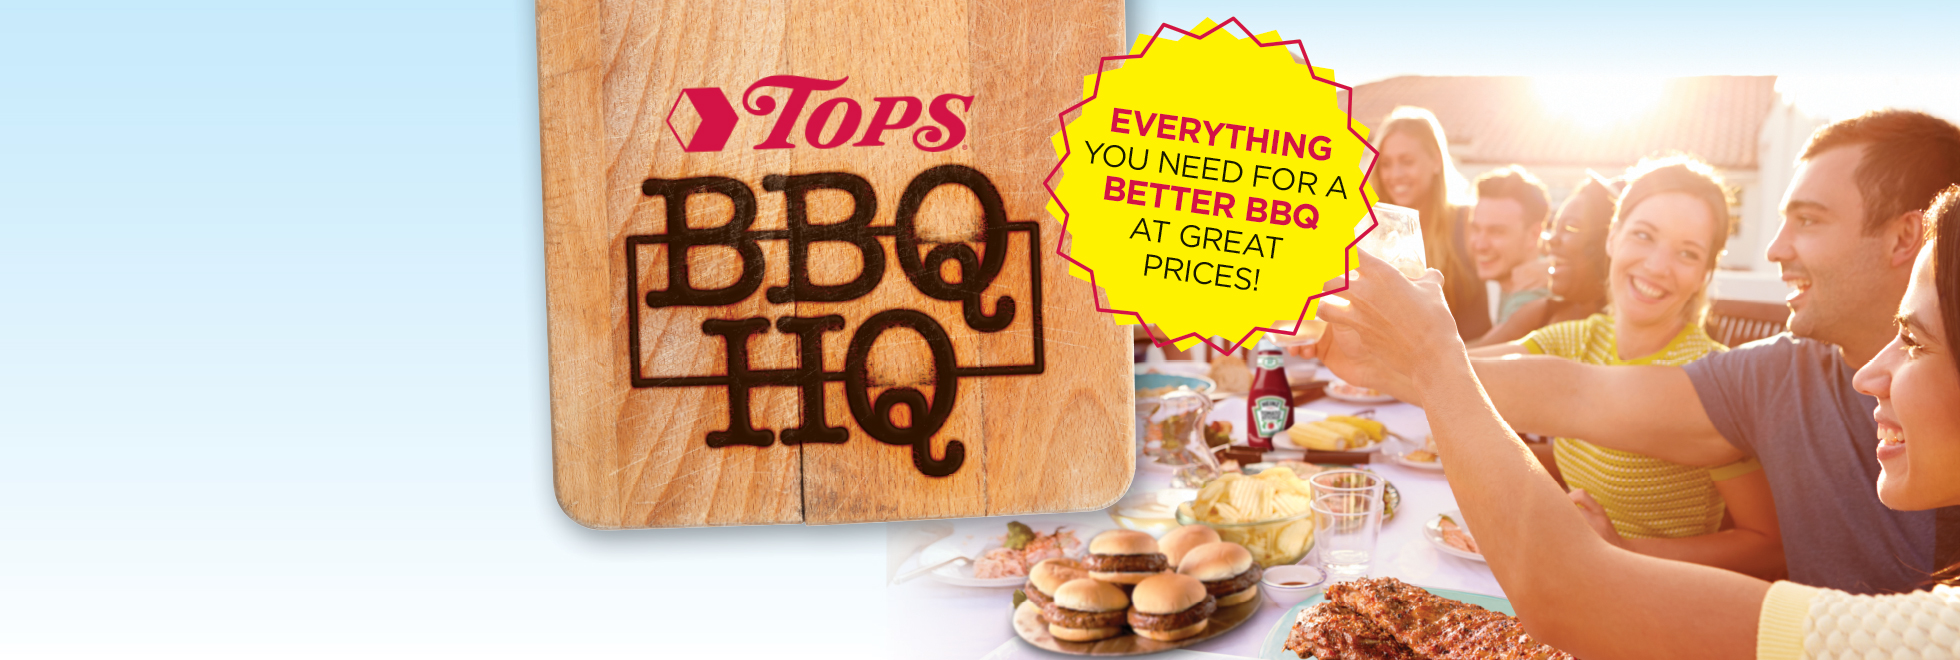 TOPS Is Your BBQ HQ